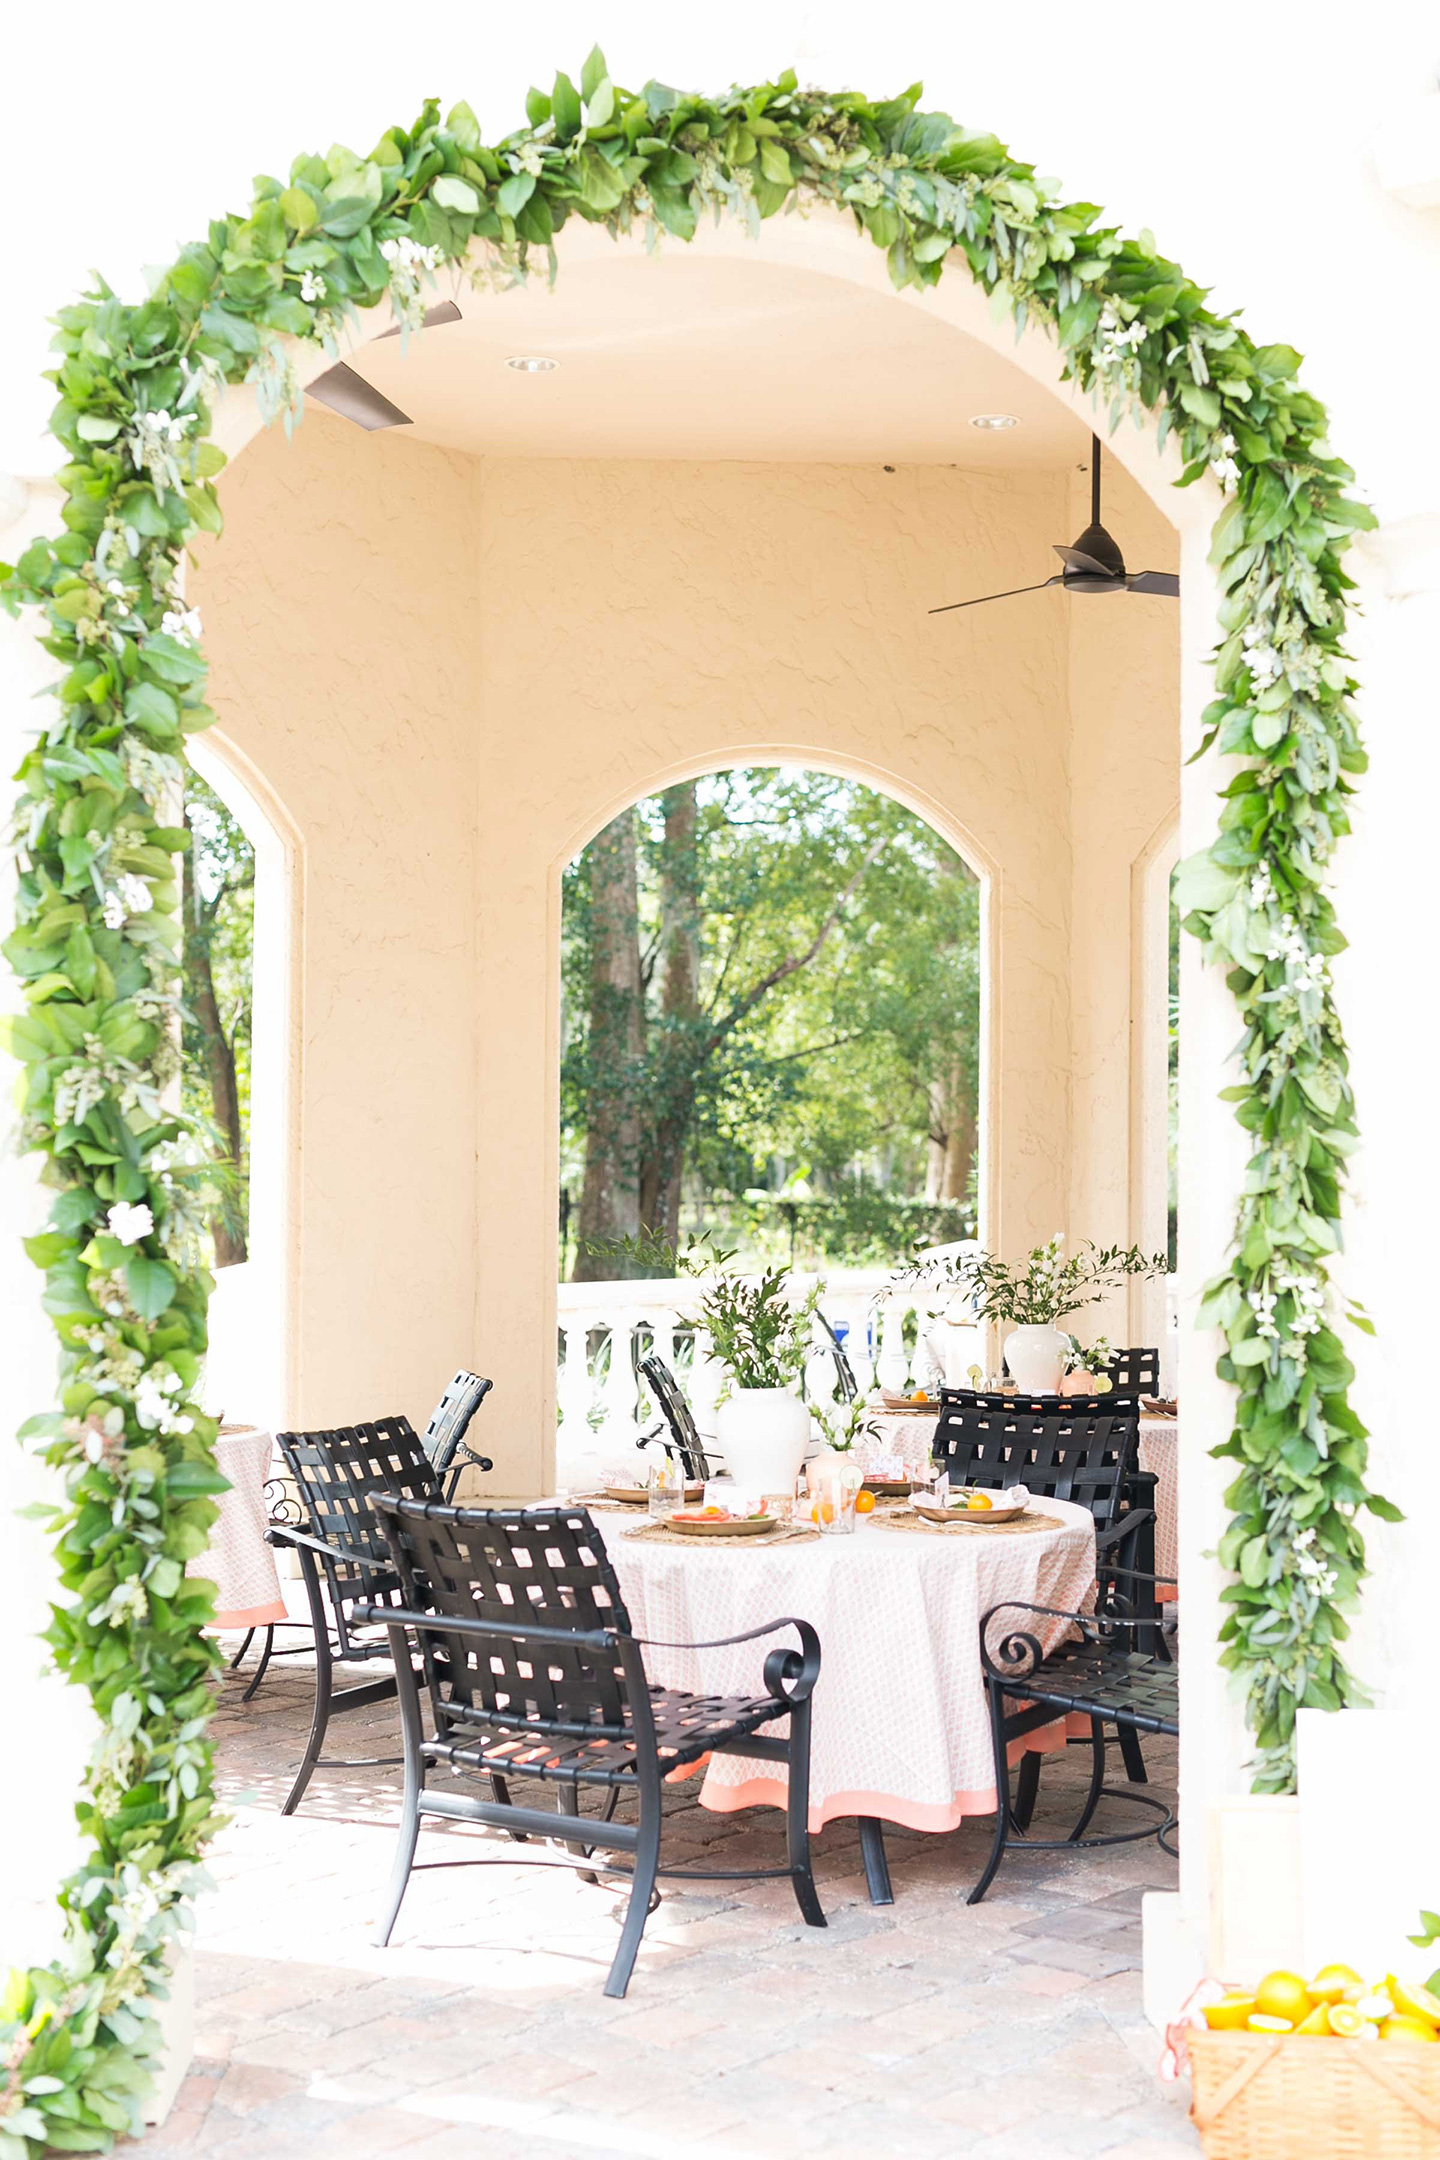 Salal + Seeded Eucalyptus Arched Garland by The Garland Guy